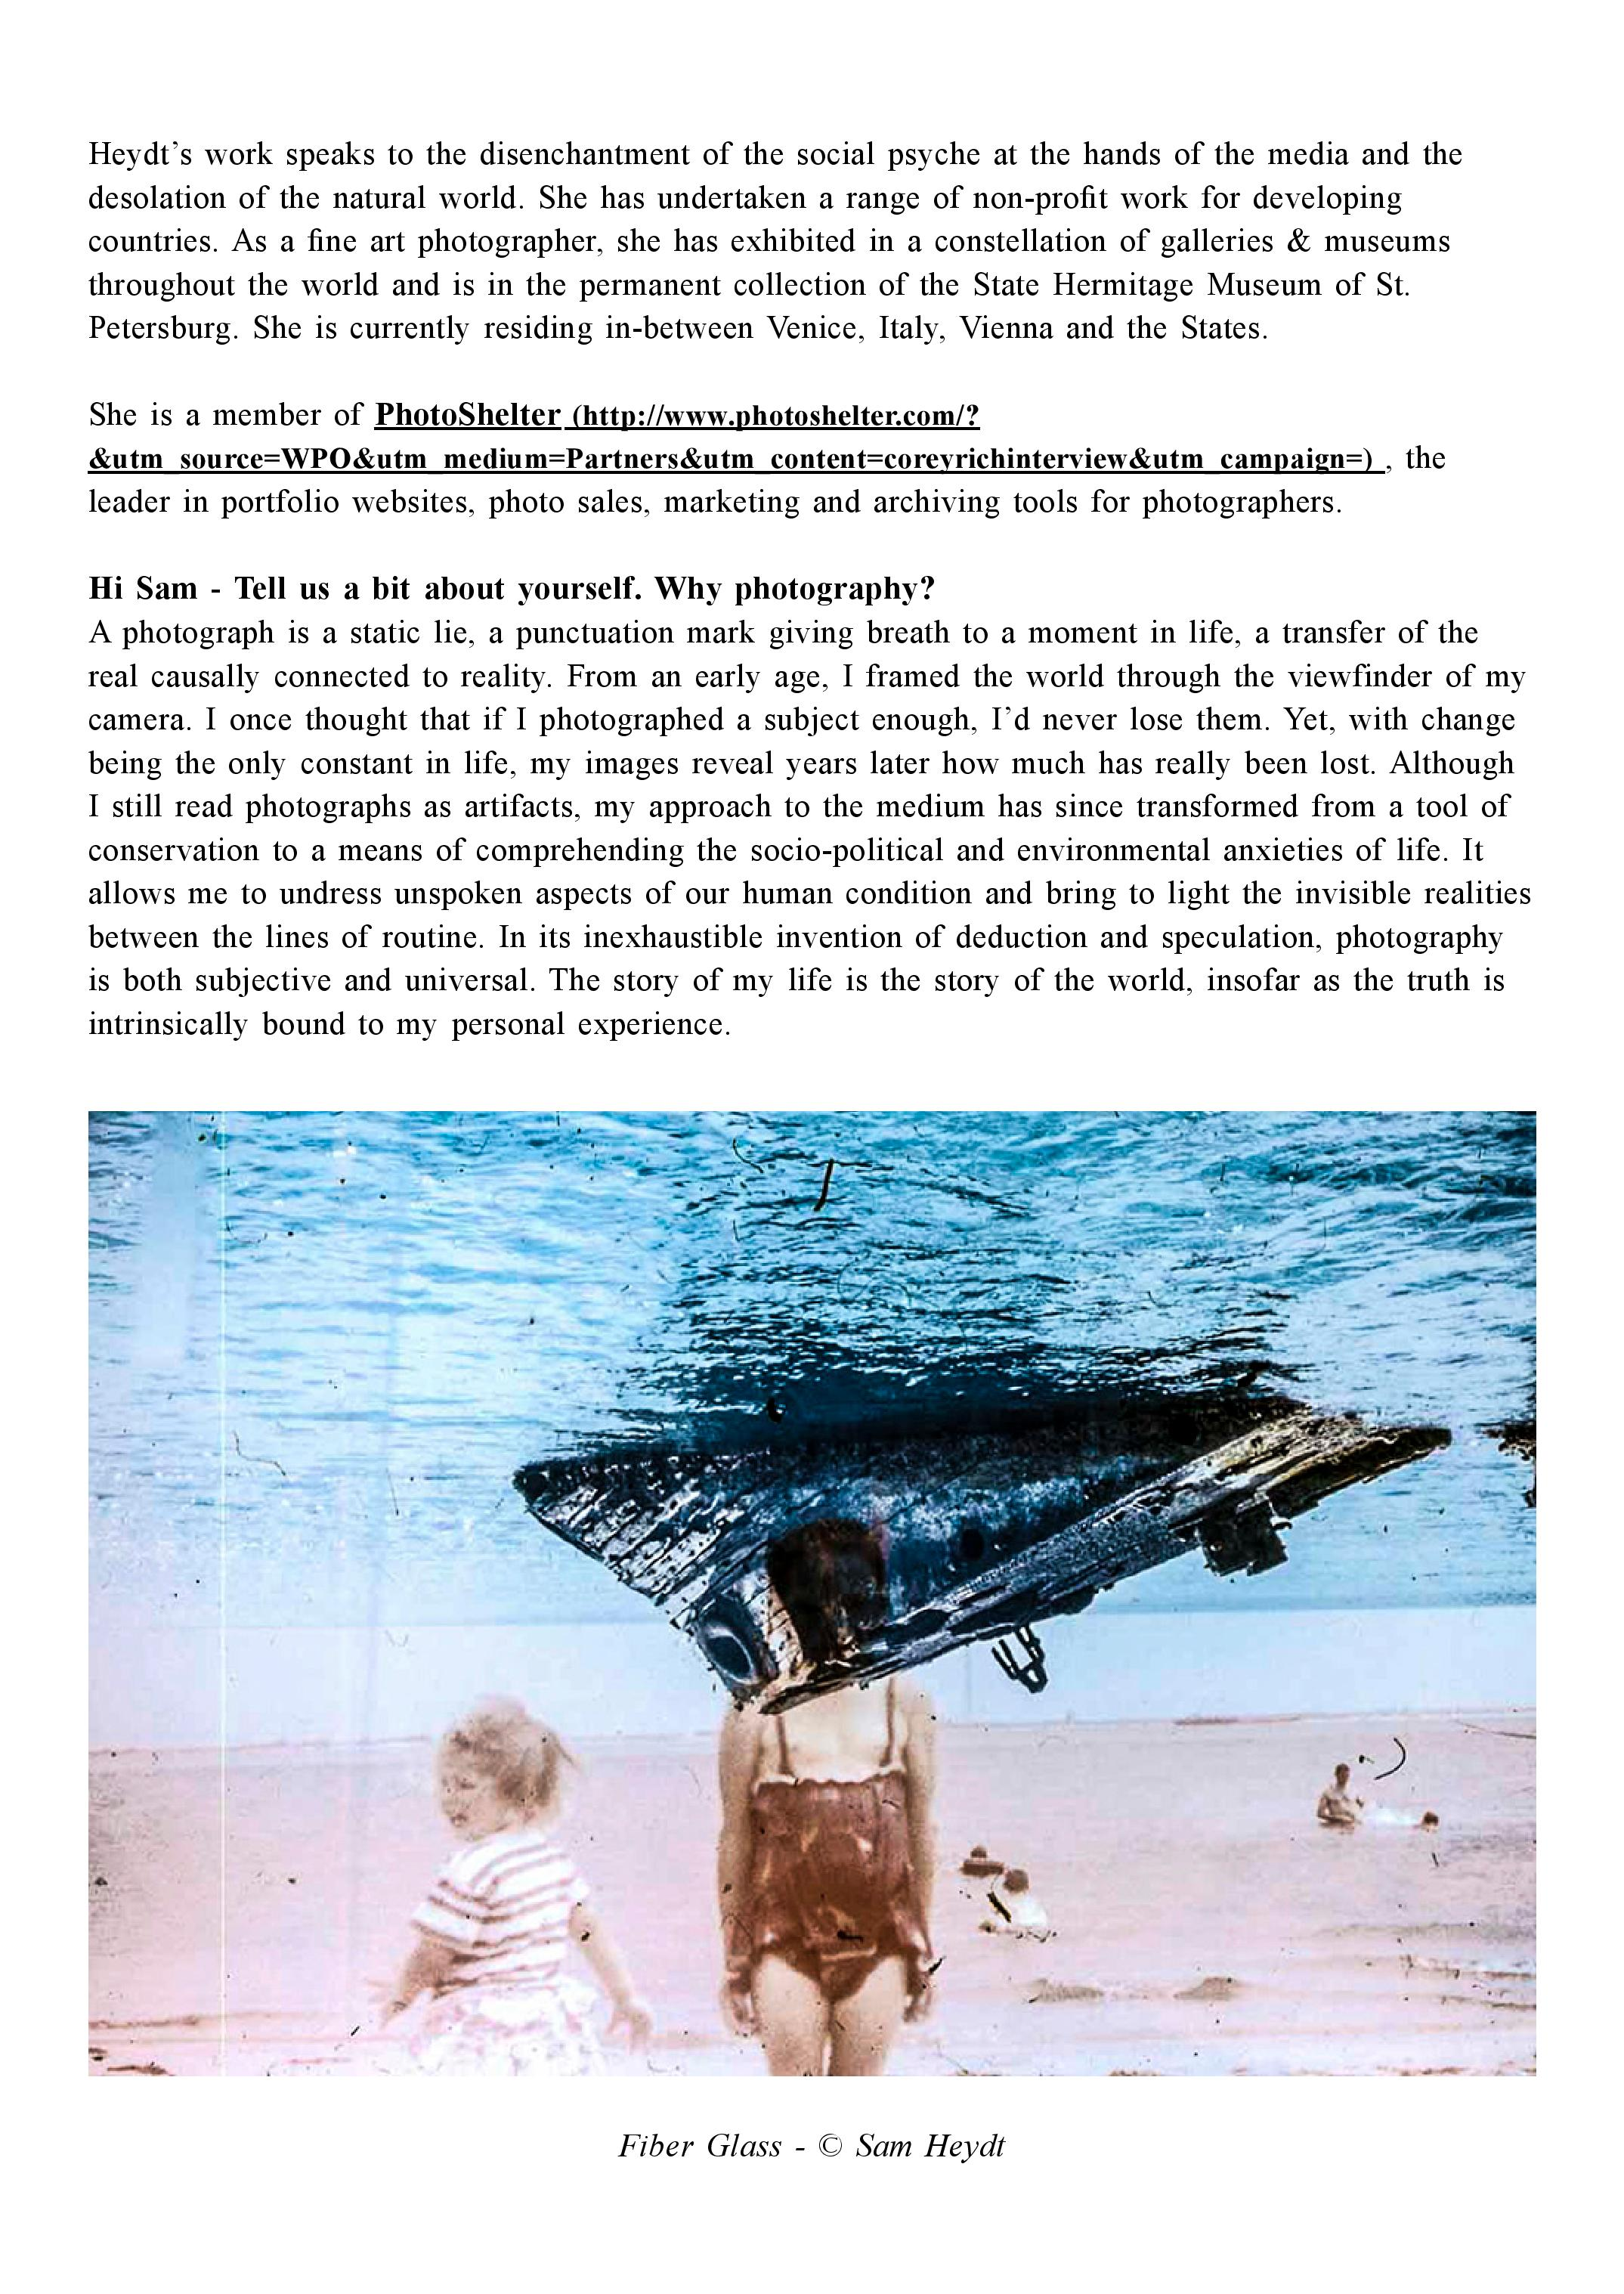 Between Memory and Reality - WPO-page-002.jpg